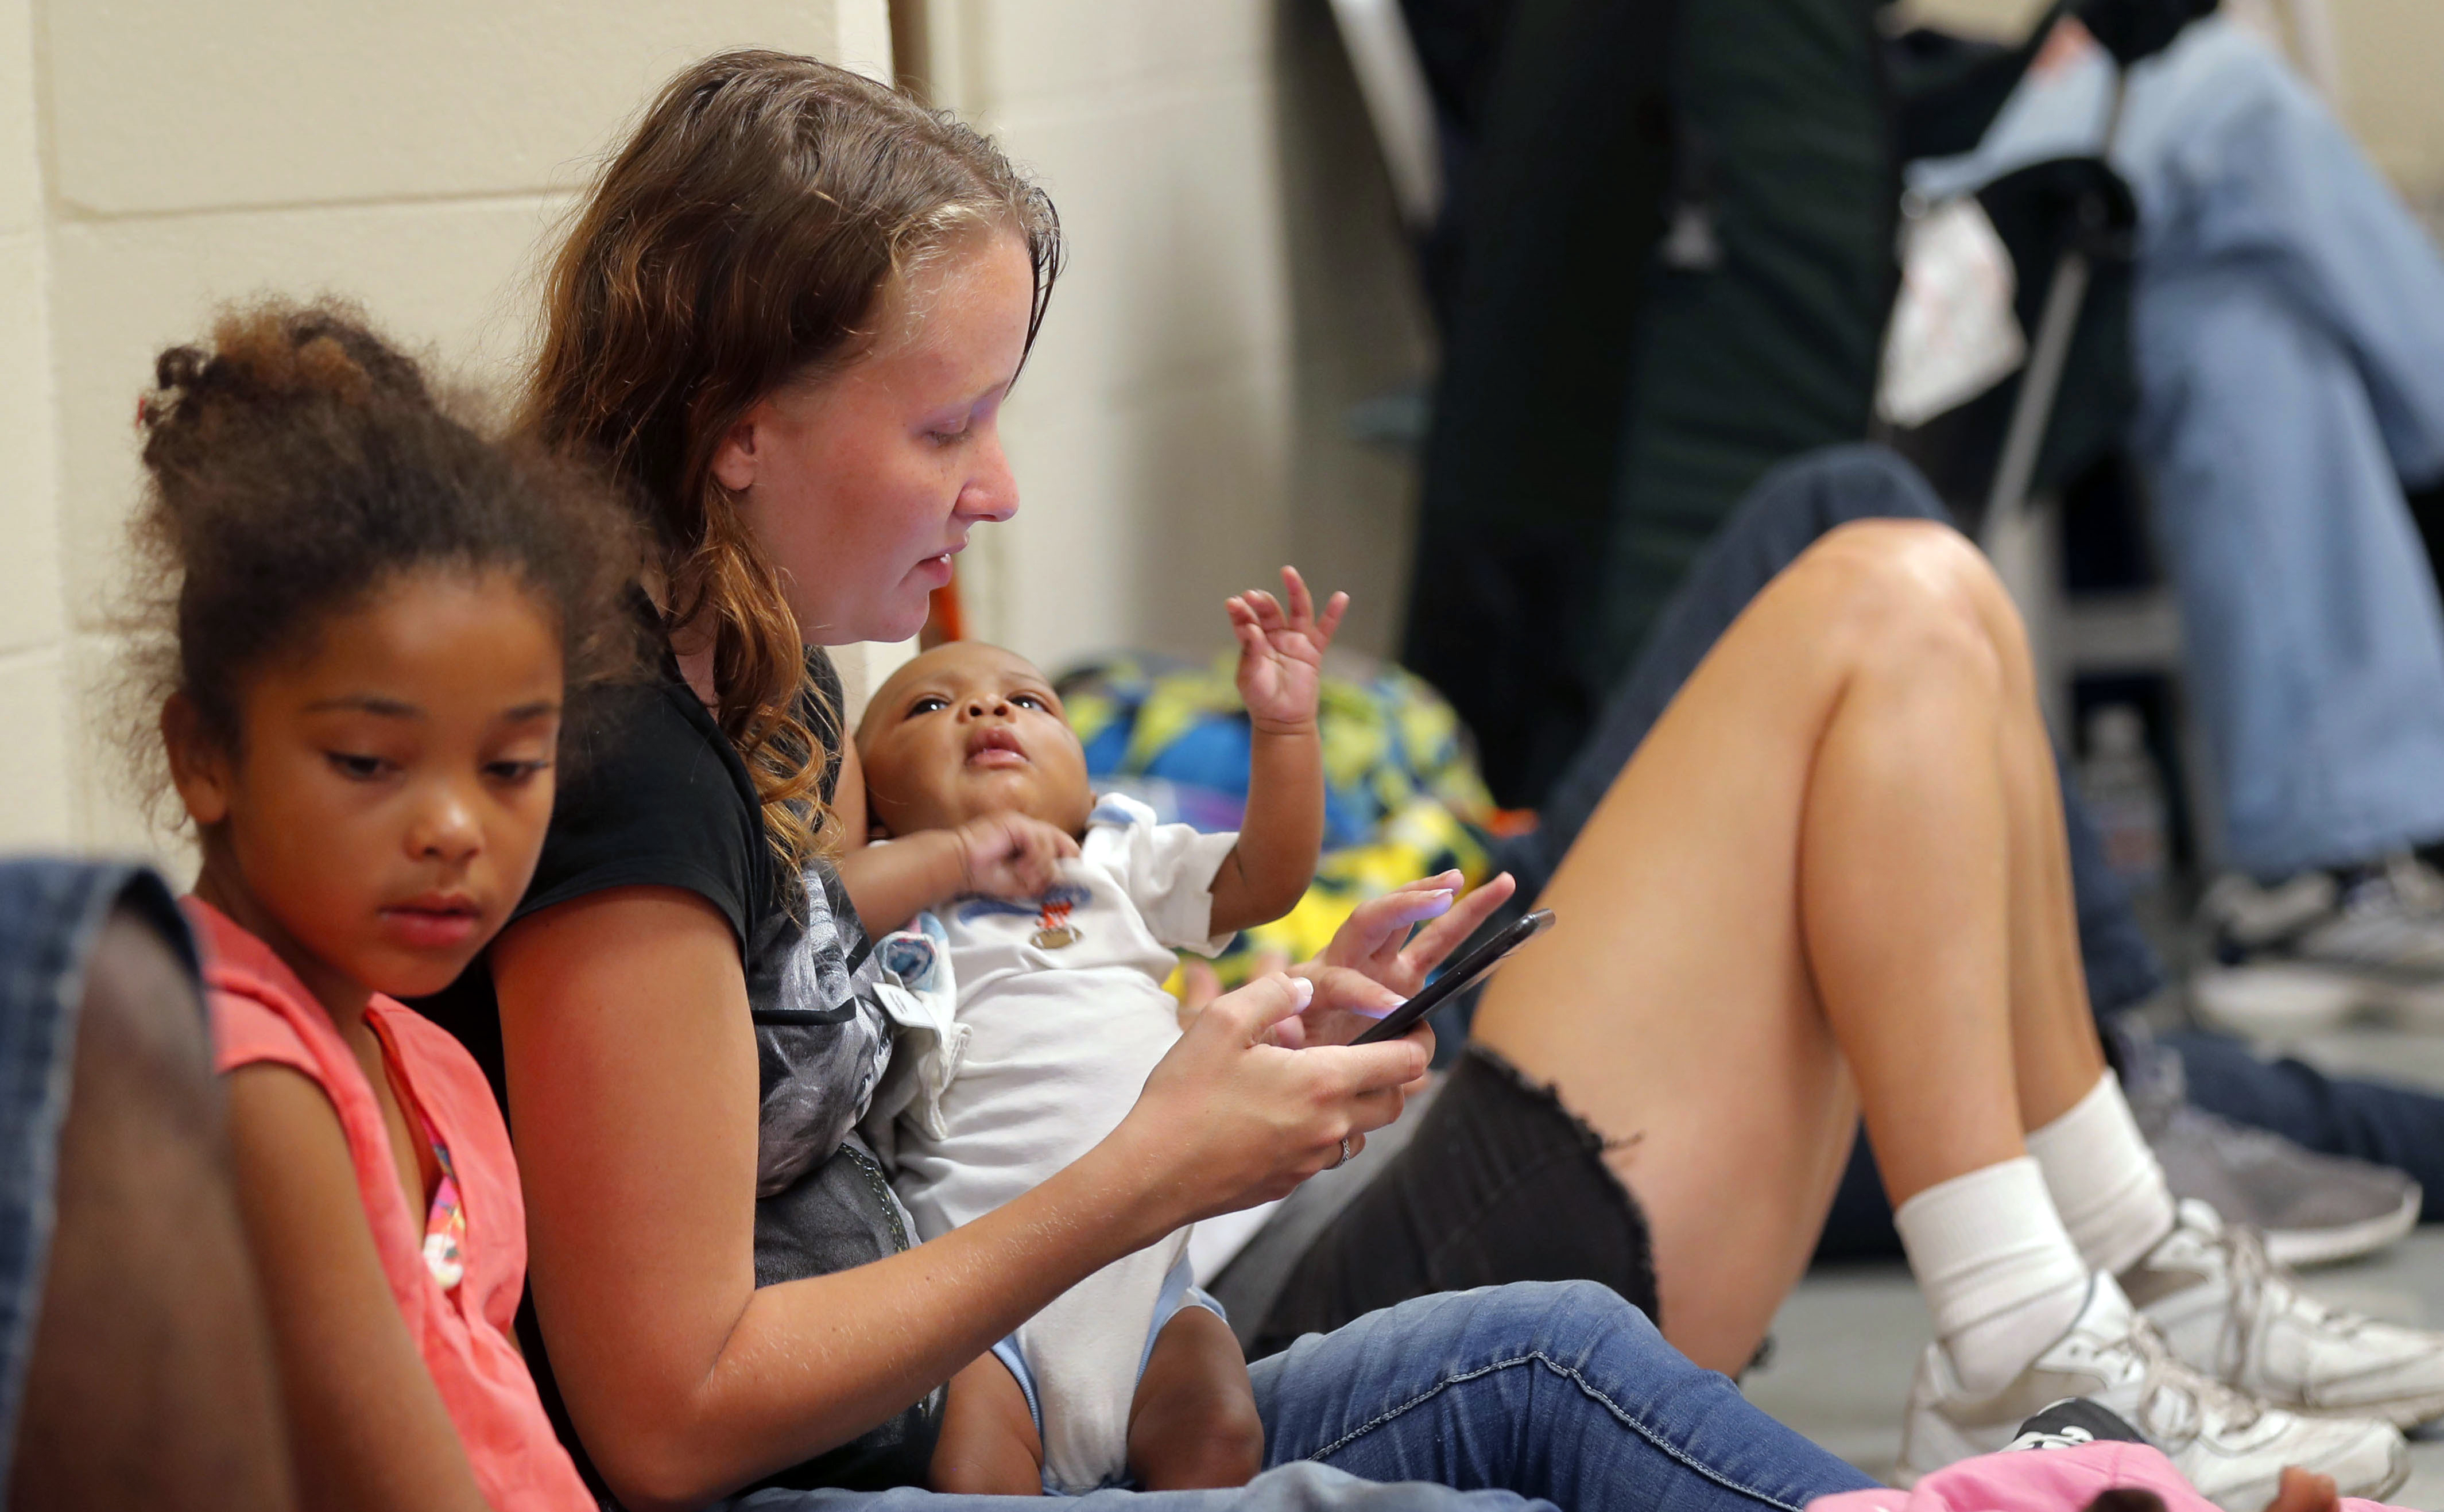 CORRECTS NAME OF HURRICANE TO MICHAEL FROM MATTHEW - Ashley Fillingim holds her godson Jerah'monie Anthony Bell, 2 months, at an evacuation shelter set up at Rutherford High School, in Panama City Beach, Fla., in advance of Hurricane Michael, which is expected to make landfall, Wednesday, Oct. 10, 2018. (AP Photo/Gerald Herbert)